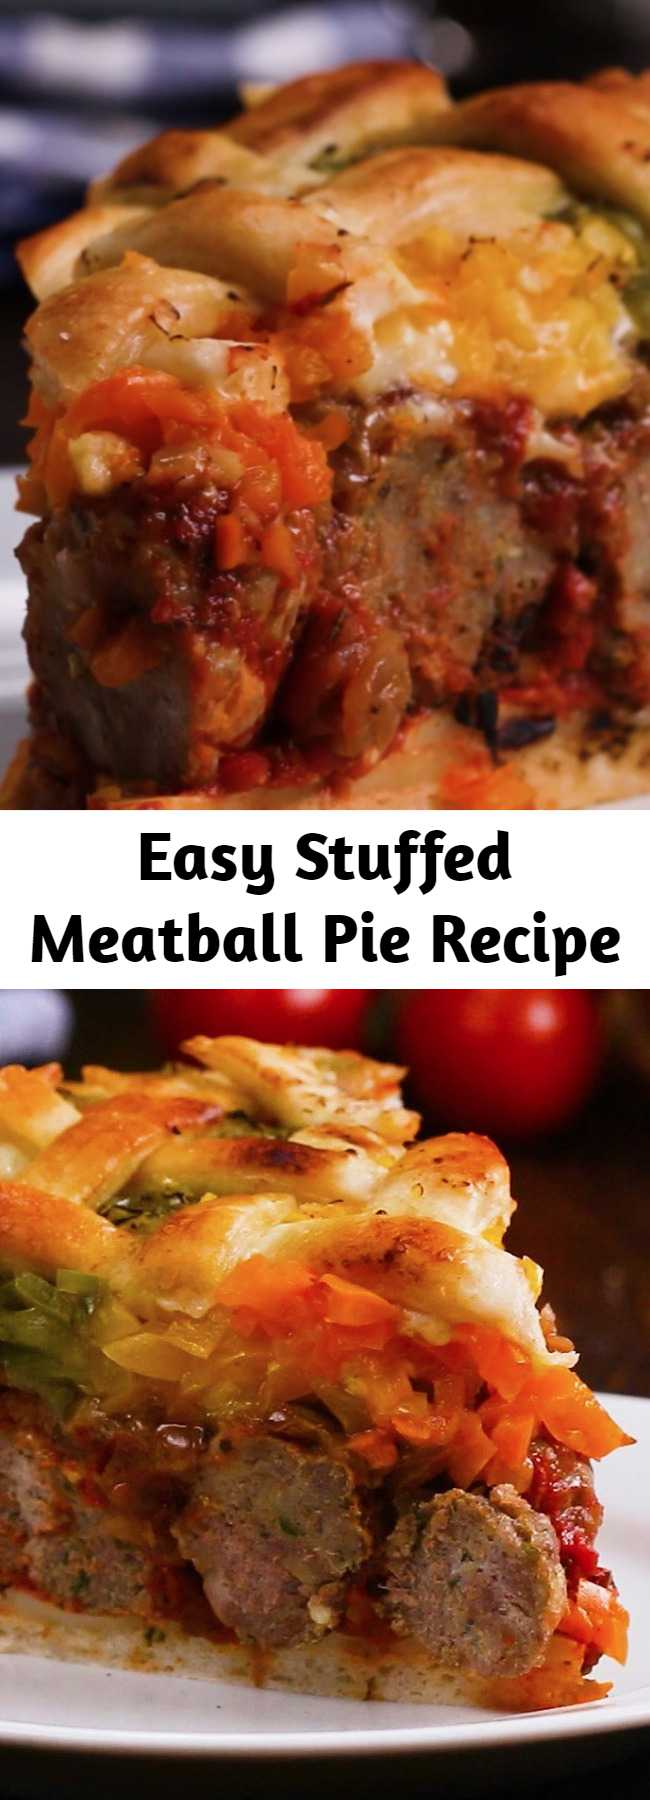 Easy Stuffed Meatball Pie Recipe - This was really tasty and easy to make. Every meatball-lover will adore this Stuffed Meatball Pie.